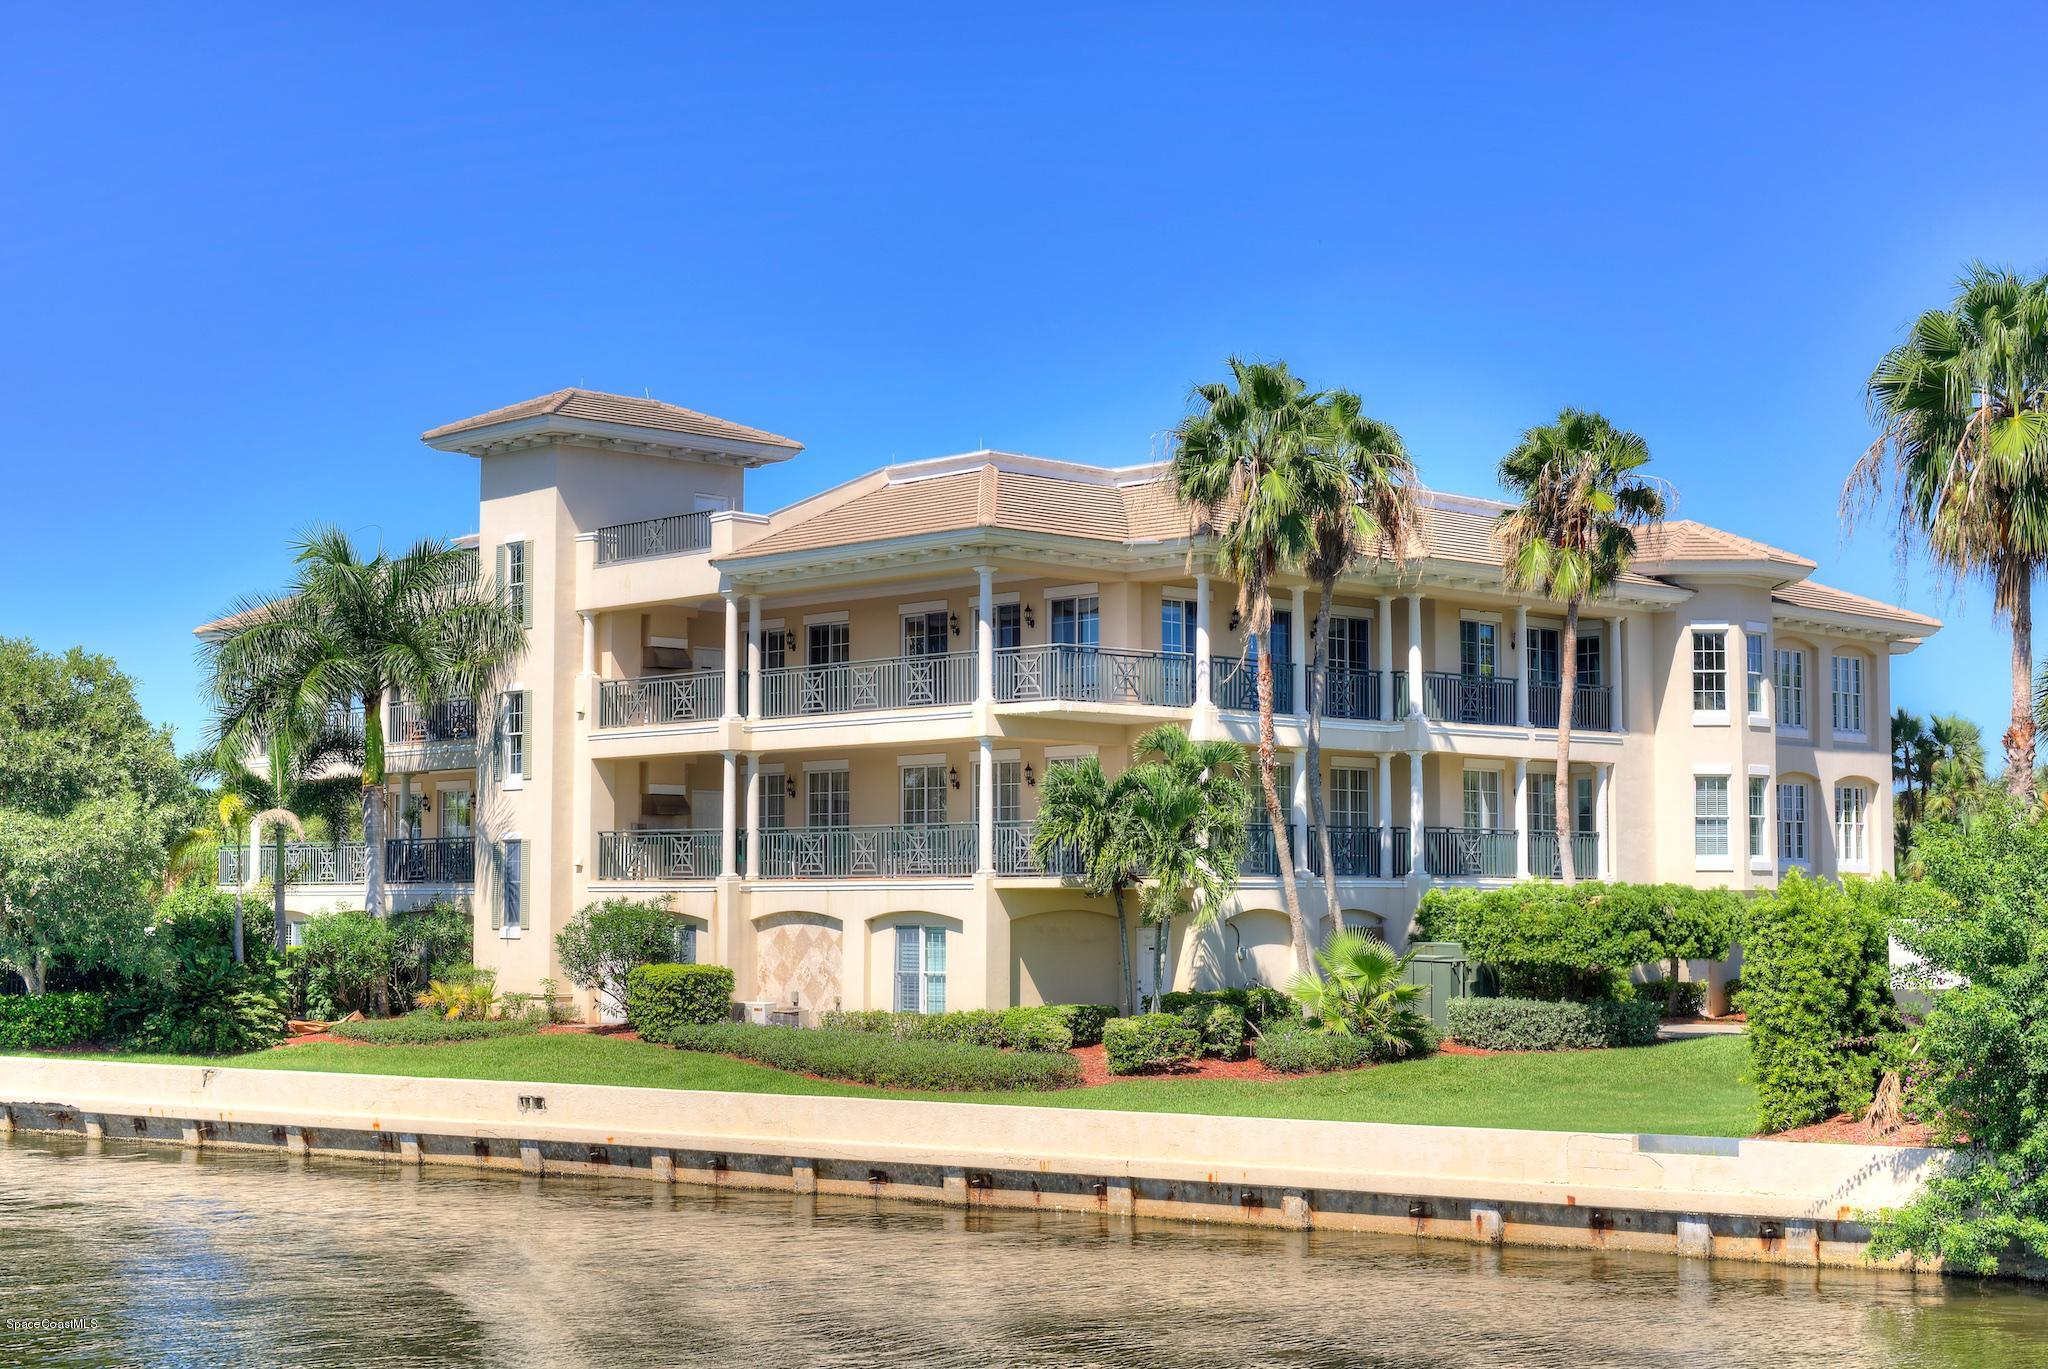 Property for Sale at 4 Marina Isles 4 Marina Isles Indian Harbour Beach, Florida 32937 United States